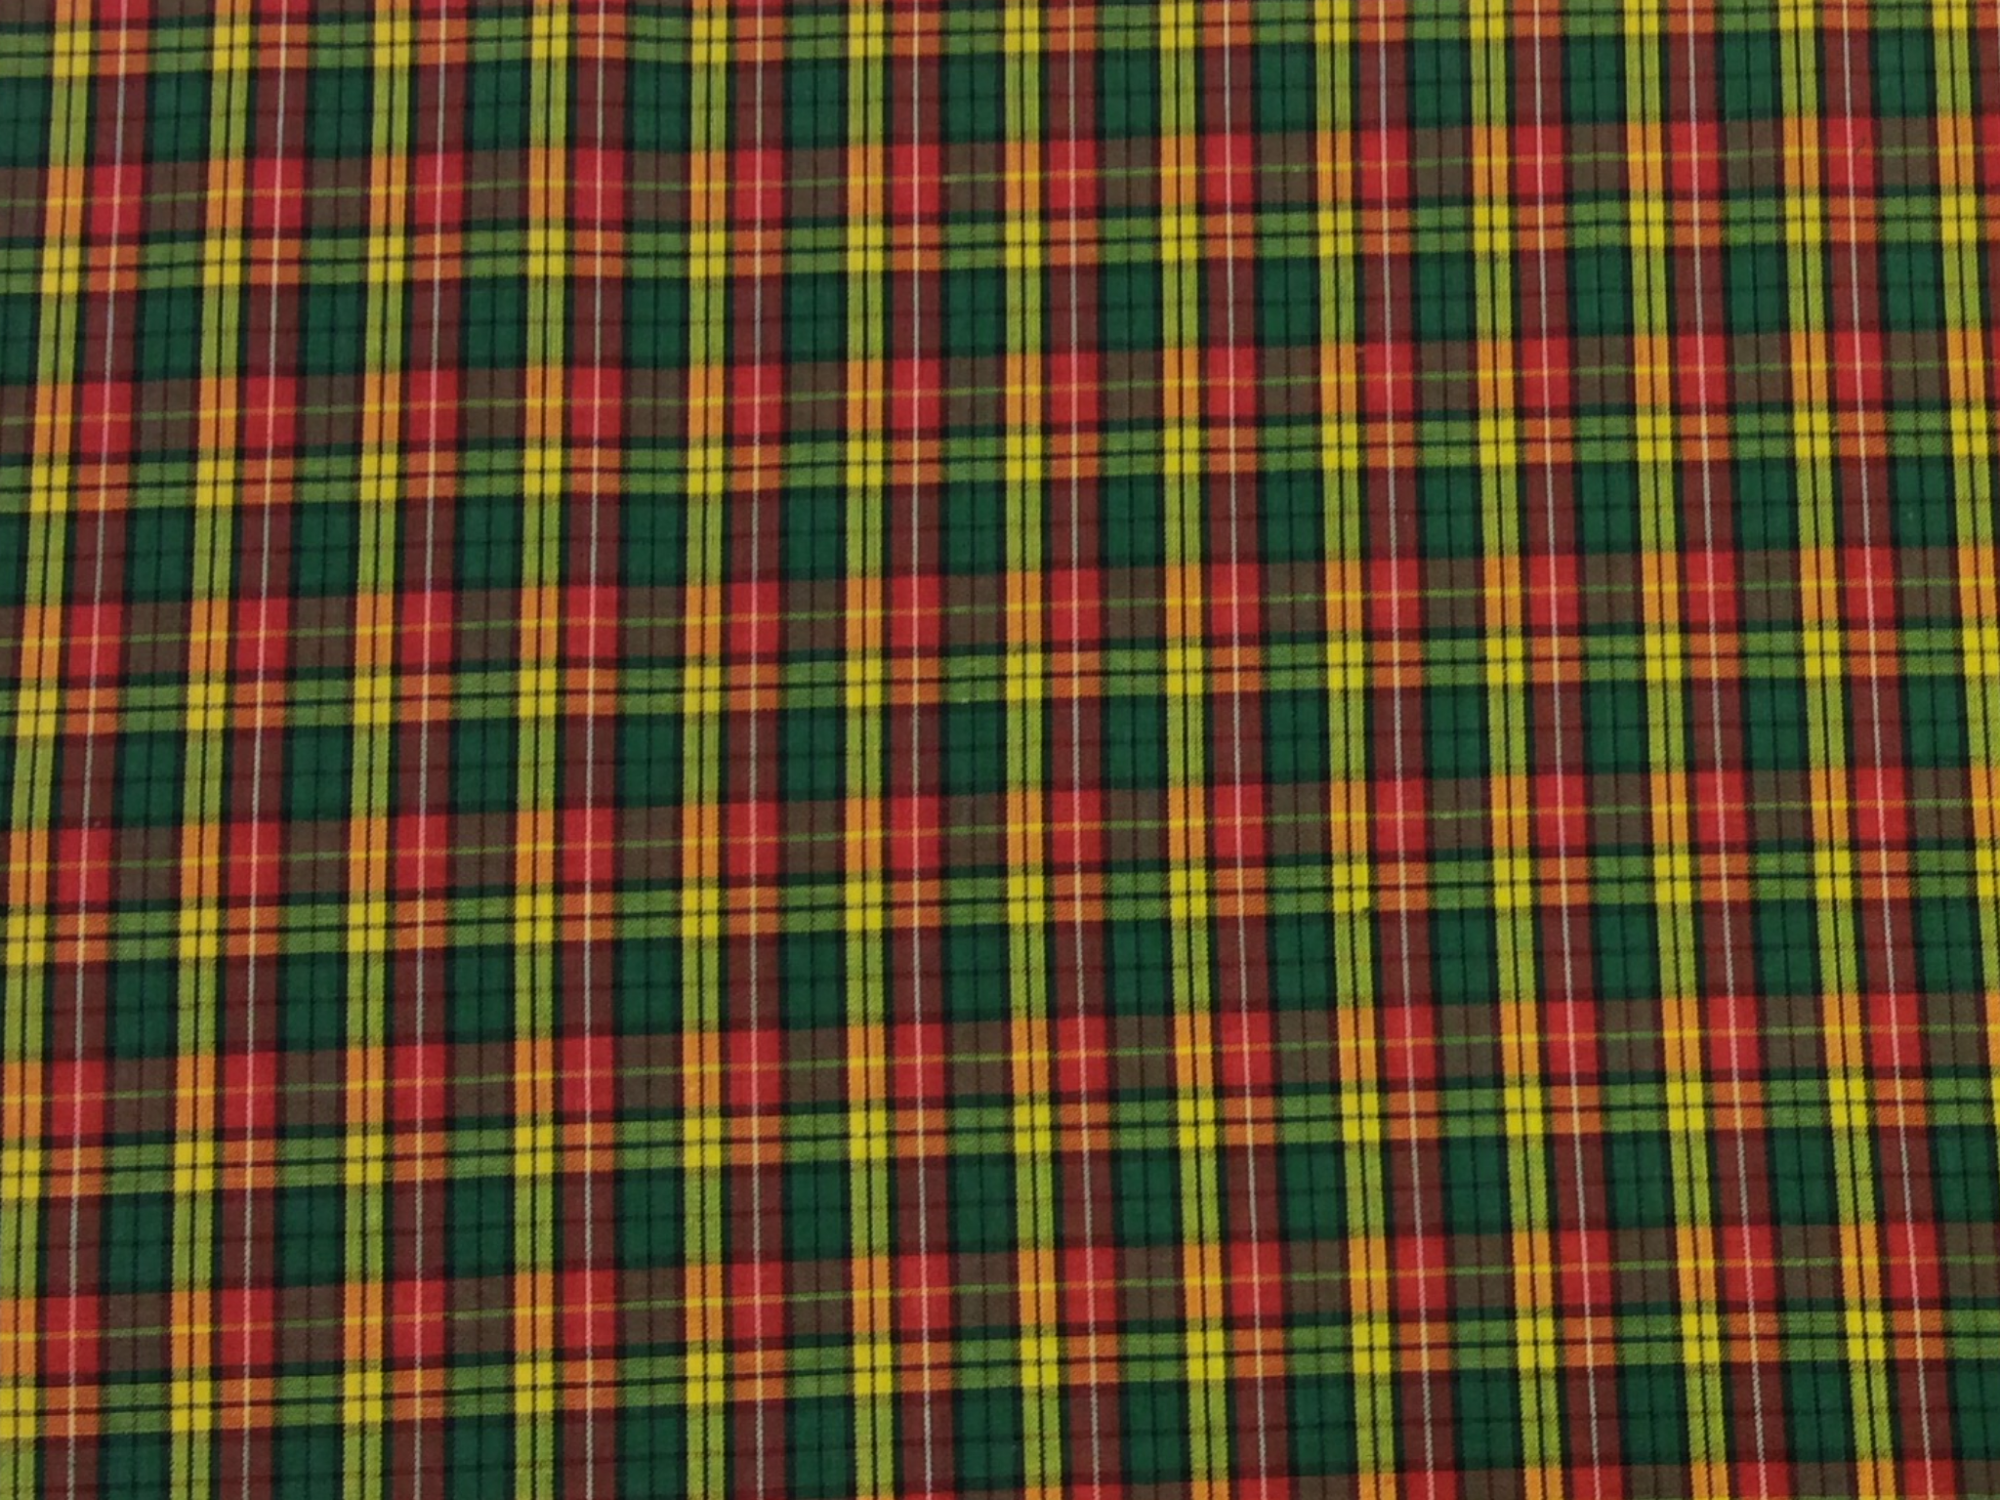 Tartan Plaid Fletcher Clan Apparel Fabric Yarn Dyed Fabric FTP17